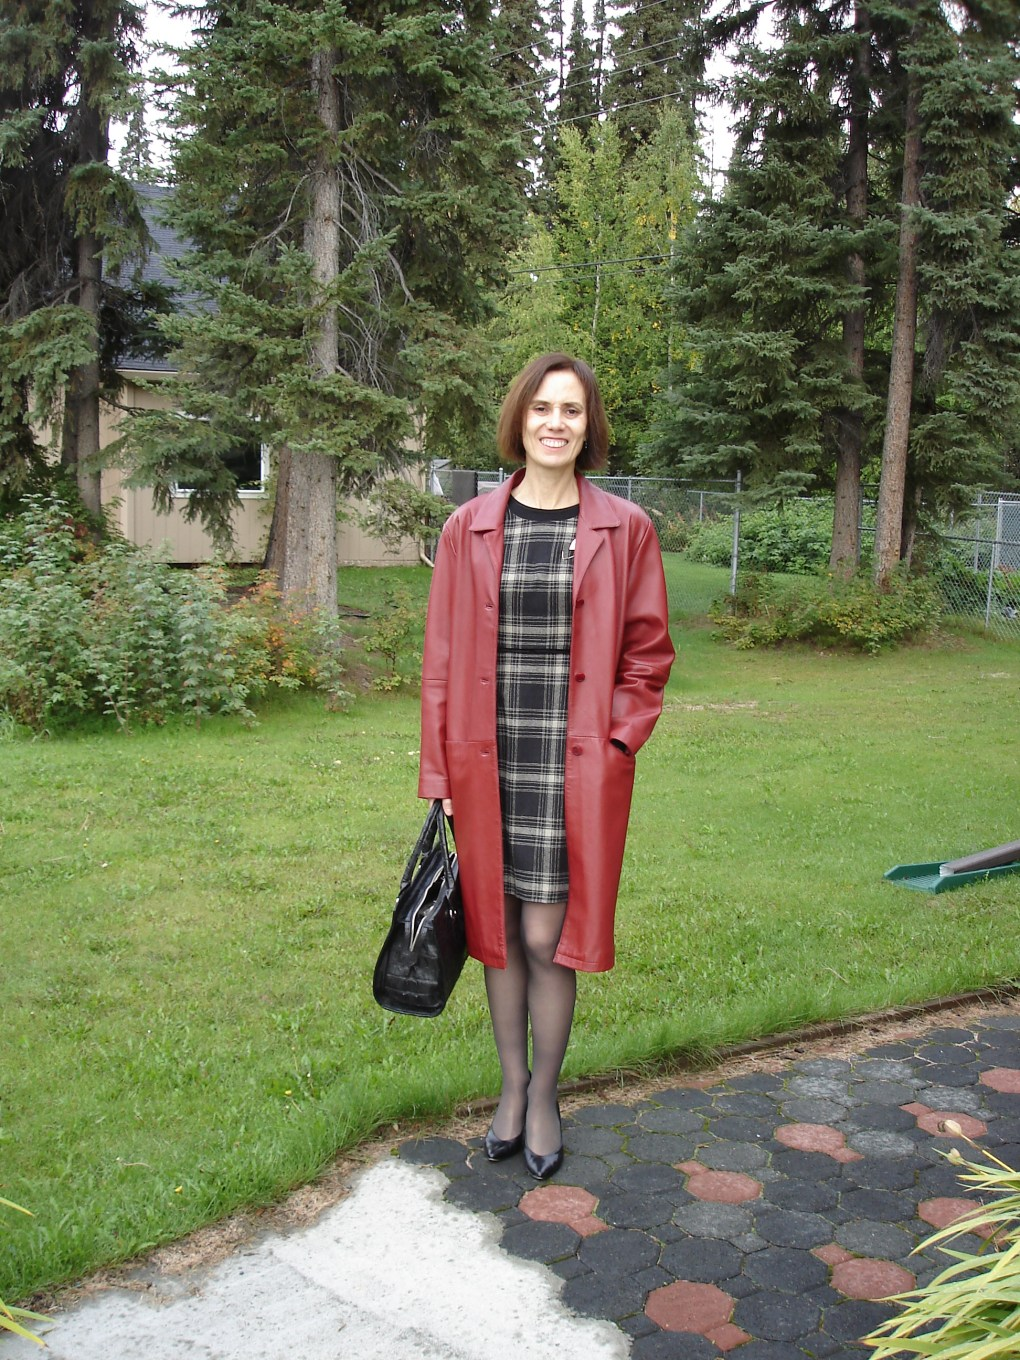 #interviewoutfit #advancedstyle mature woman in fall job interview outfit